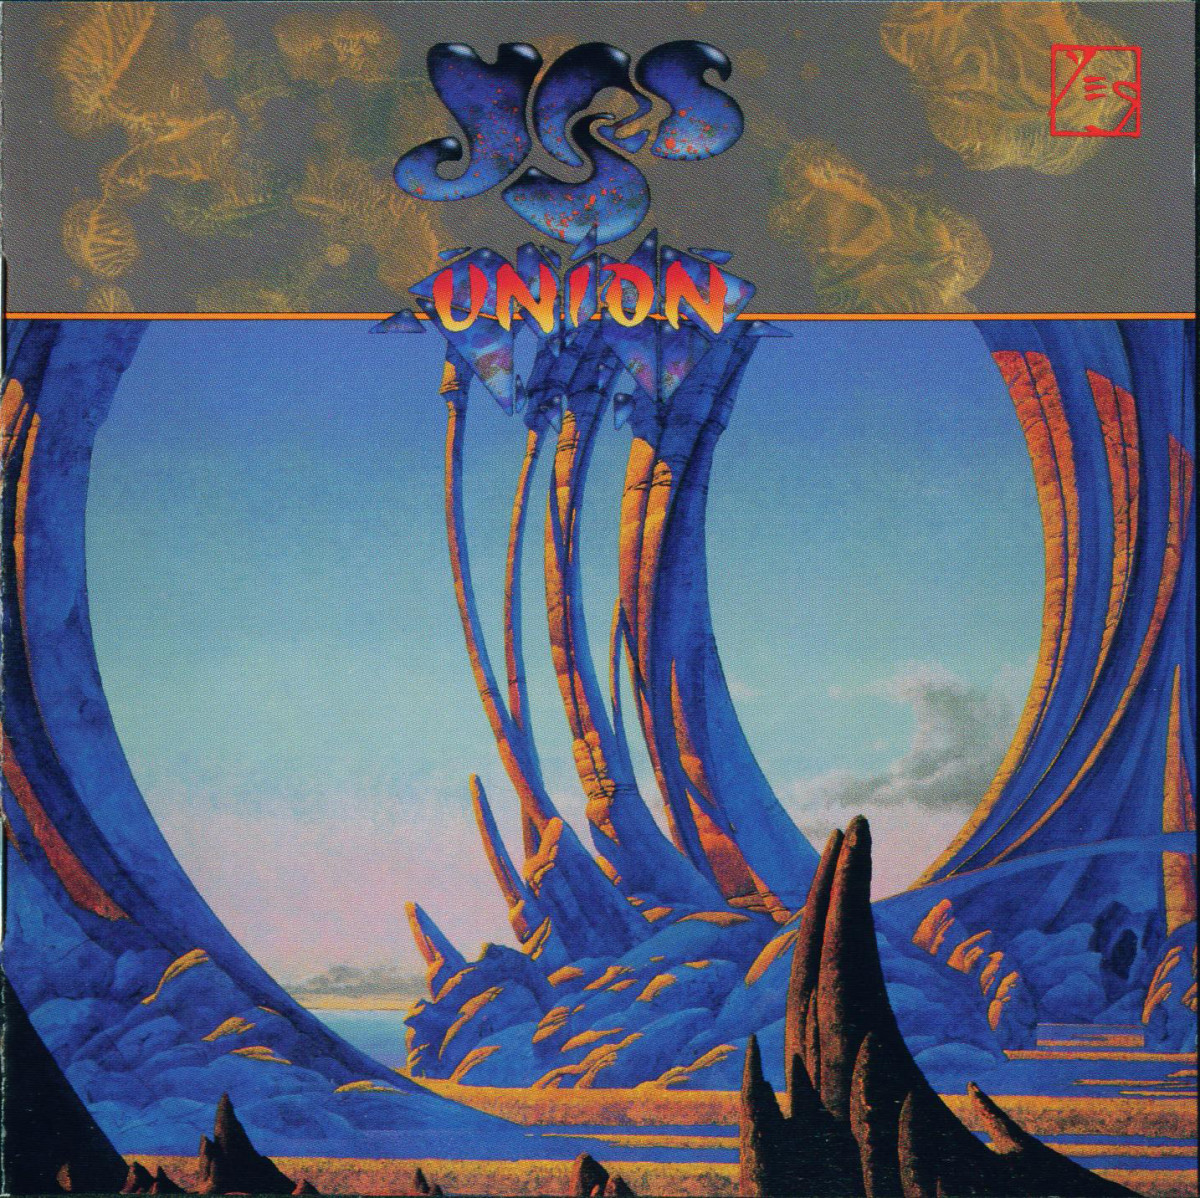 "Yes ""Union"" Arista Records AL-8643 12"" LP Vinyl Record, US Pressing (1991) Album Cover Art & Design by Roger Dean"